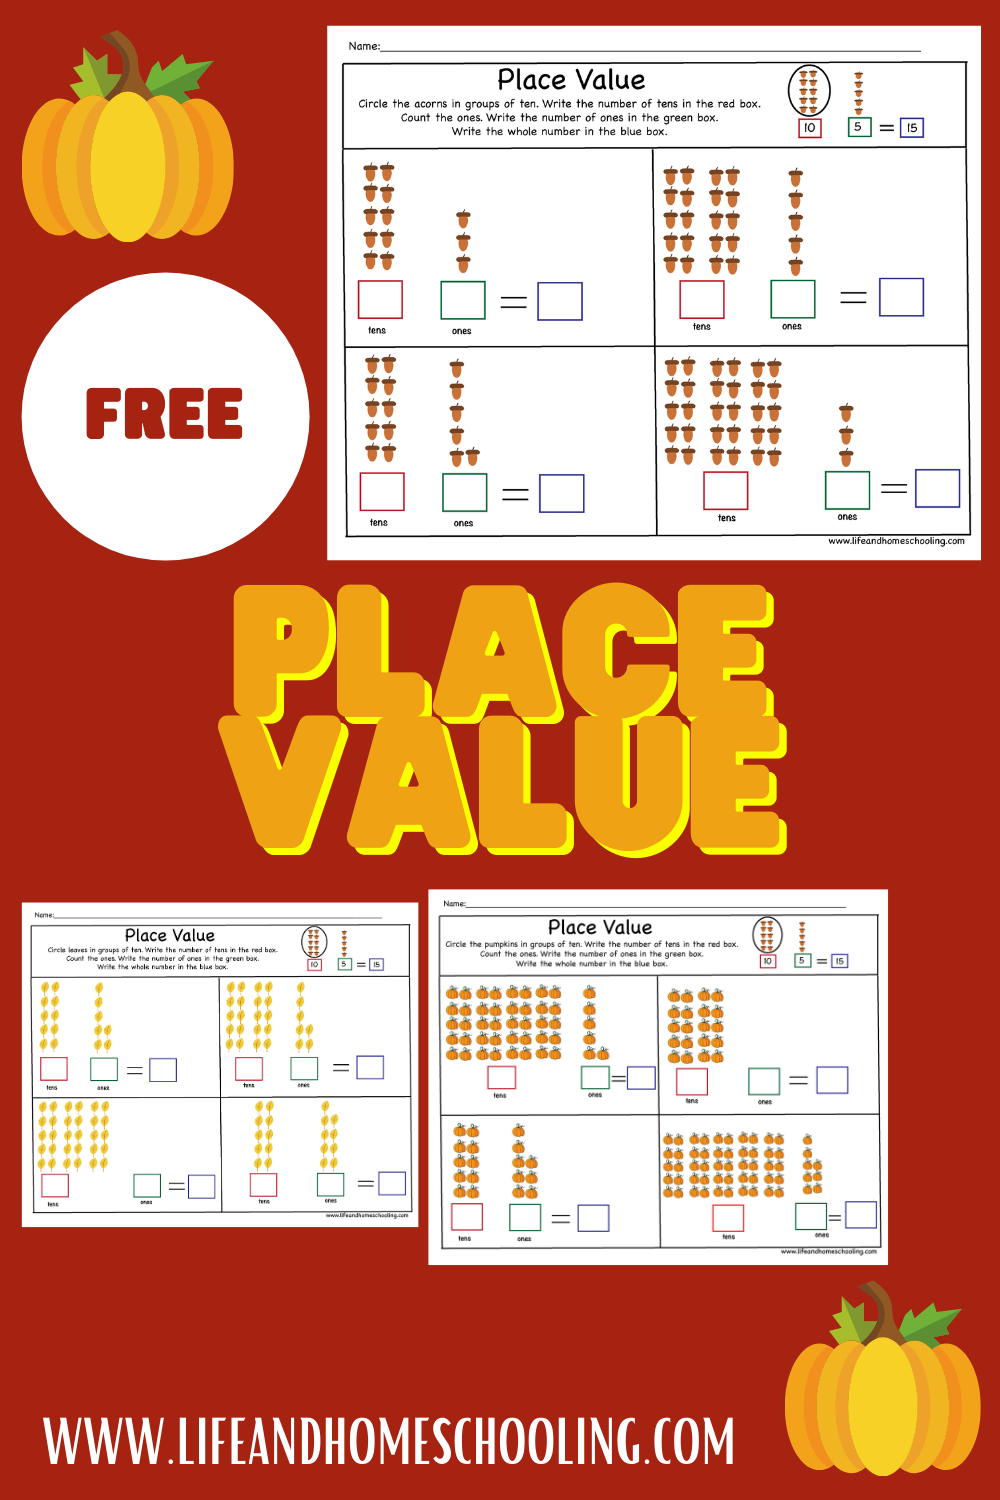 Free place value worksheets / life and homeschooling